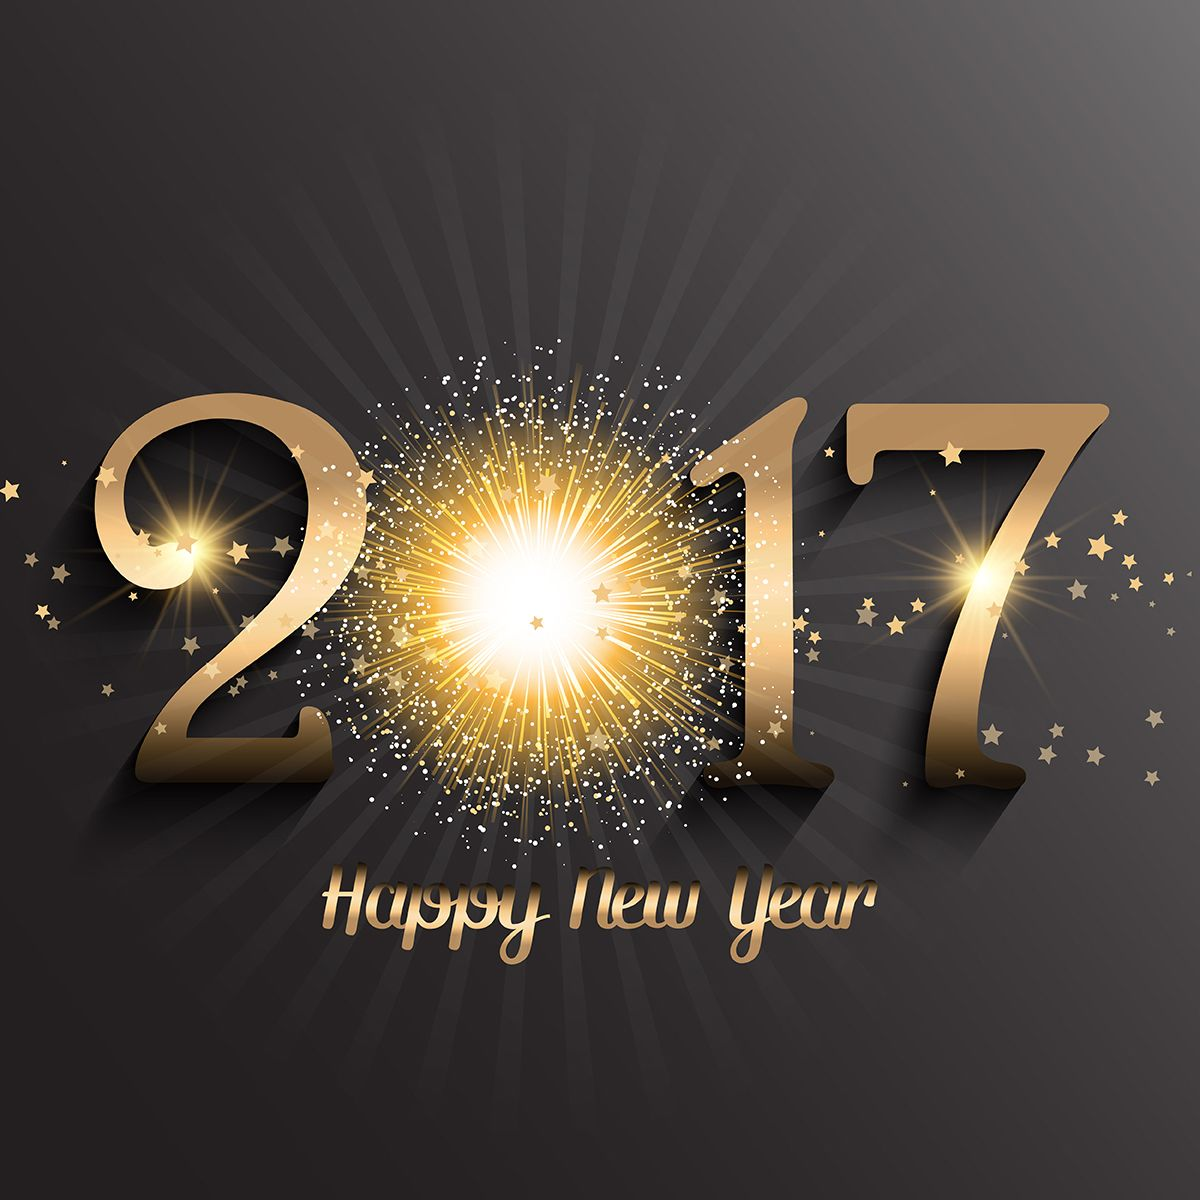 Happy New Year 2017 HD Wallpaper Images Download